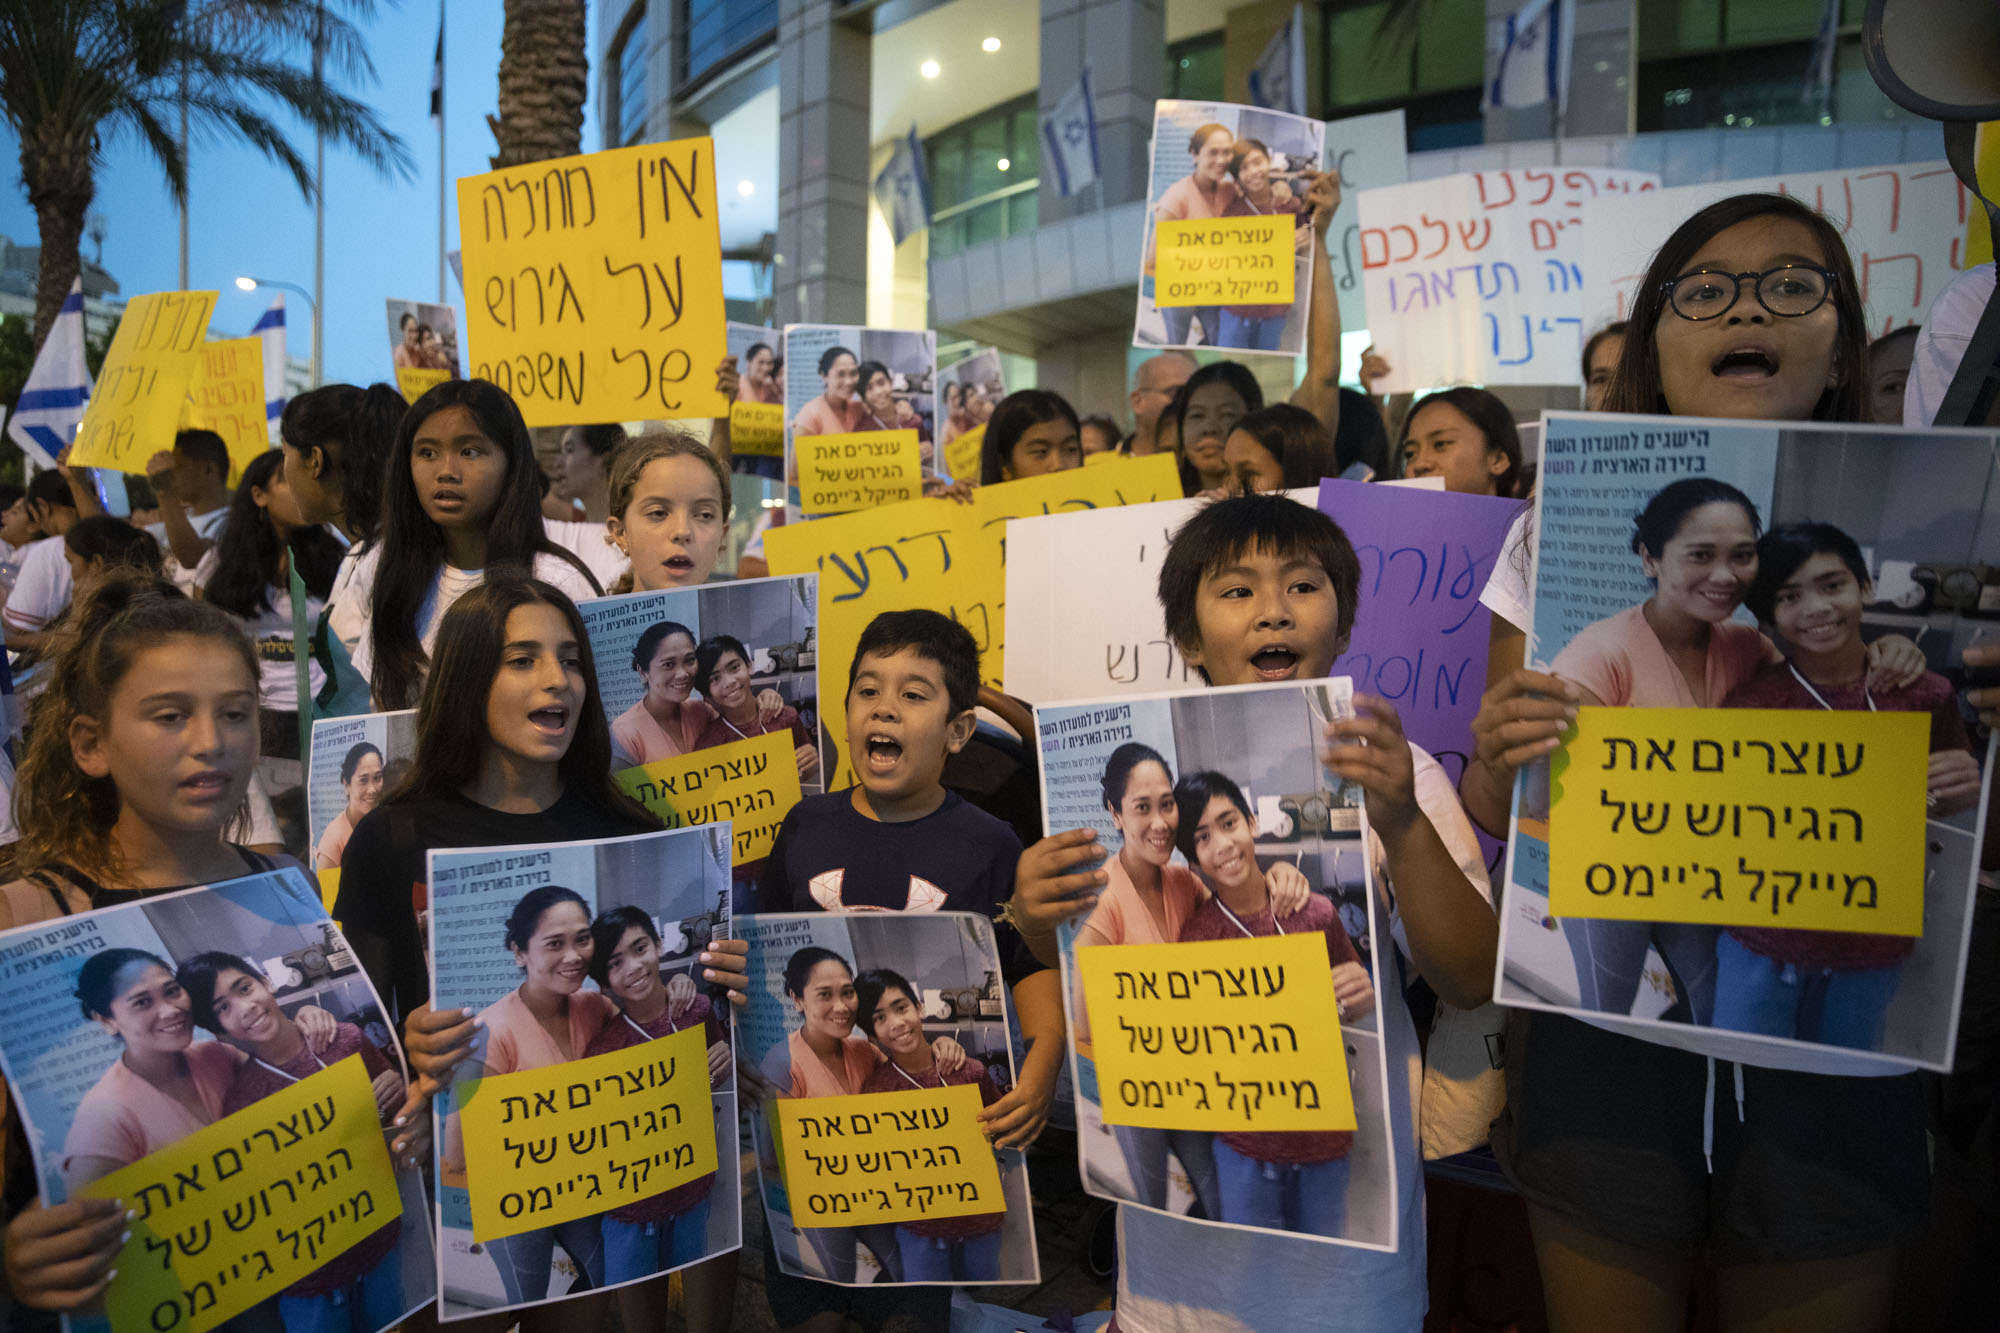 Filipino schoolchildren protest with their classmates against the deportation of foreign workers and their children in front of the Interior Ministry in Tel Aviv, July 22, 2019. (Oren Ziv/Activestills.org)